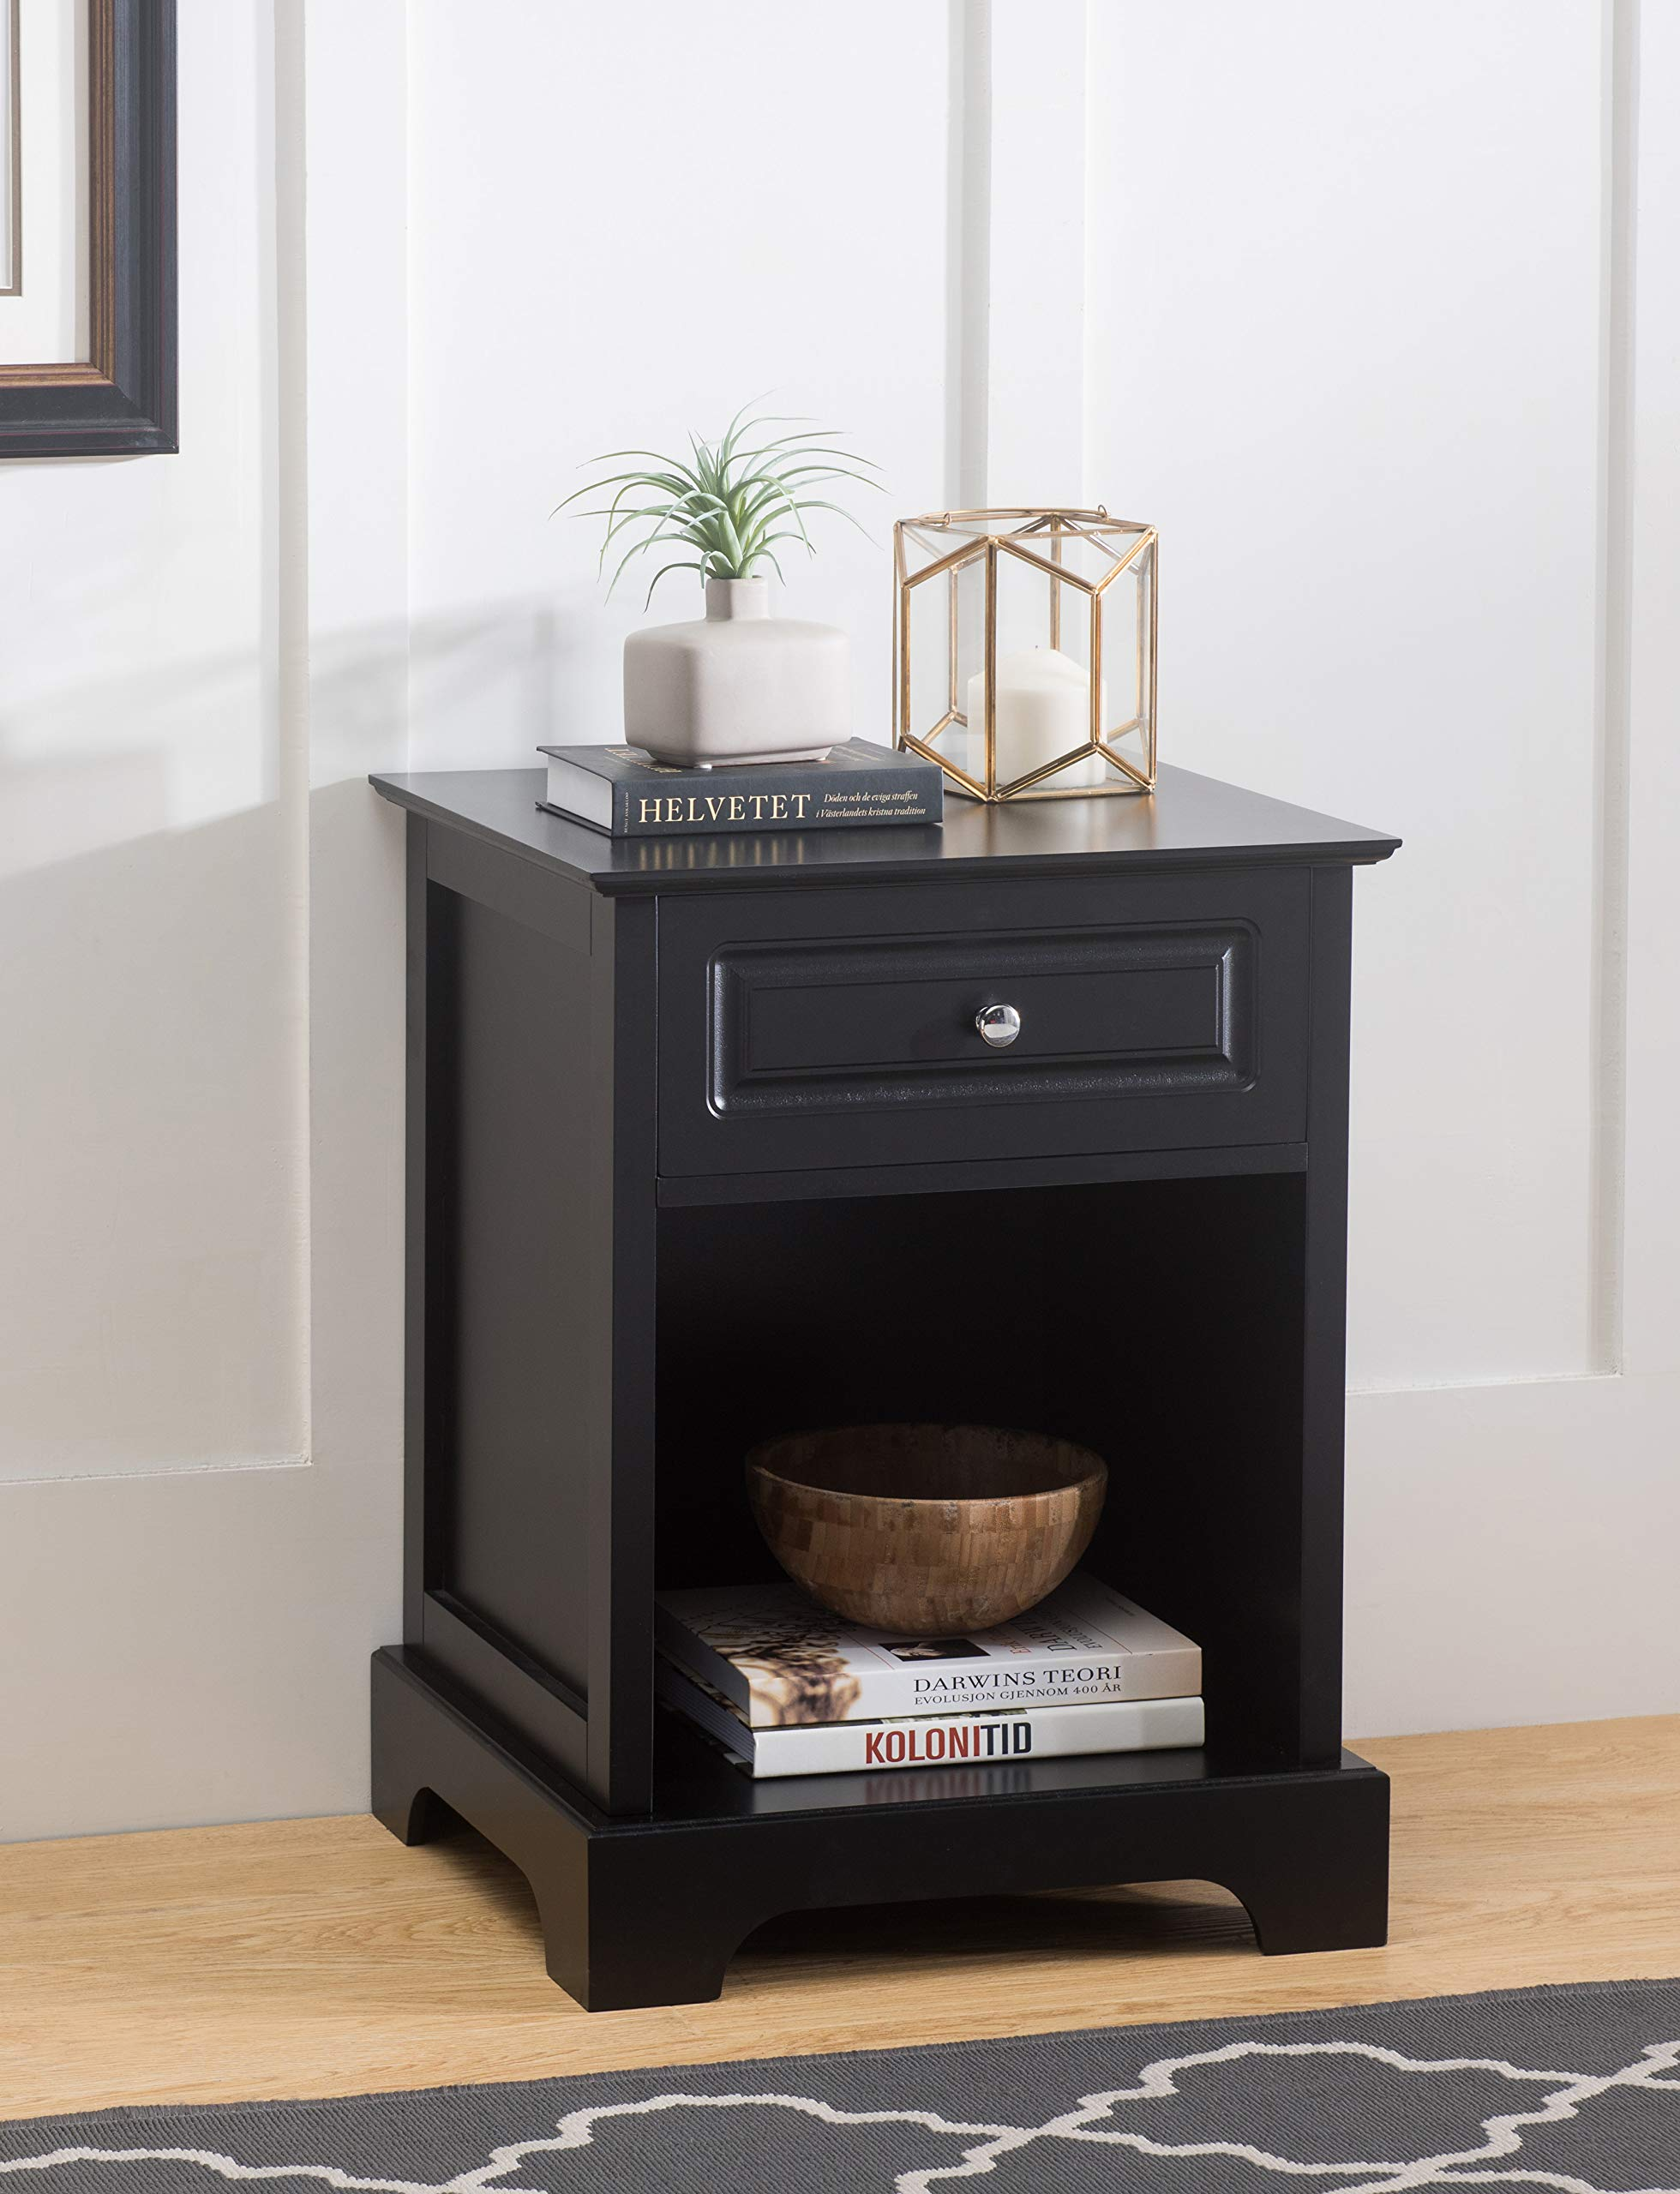 2L Lifestyle B12600006-P Carleton Side Table with Drawer Black Finish, Small